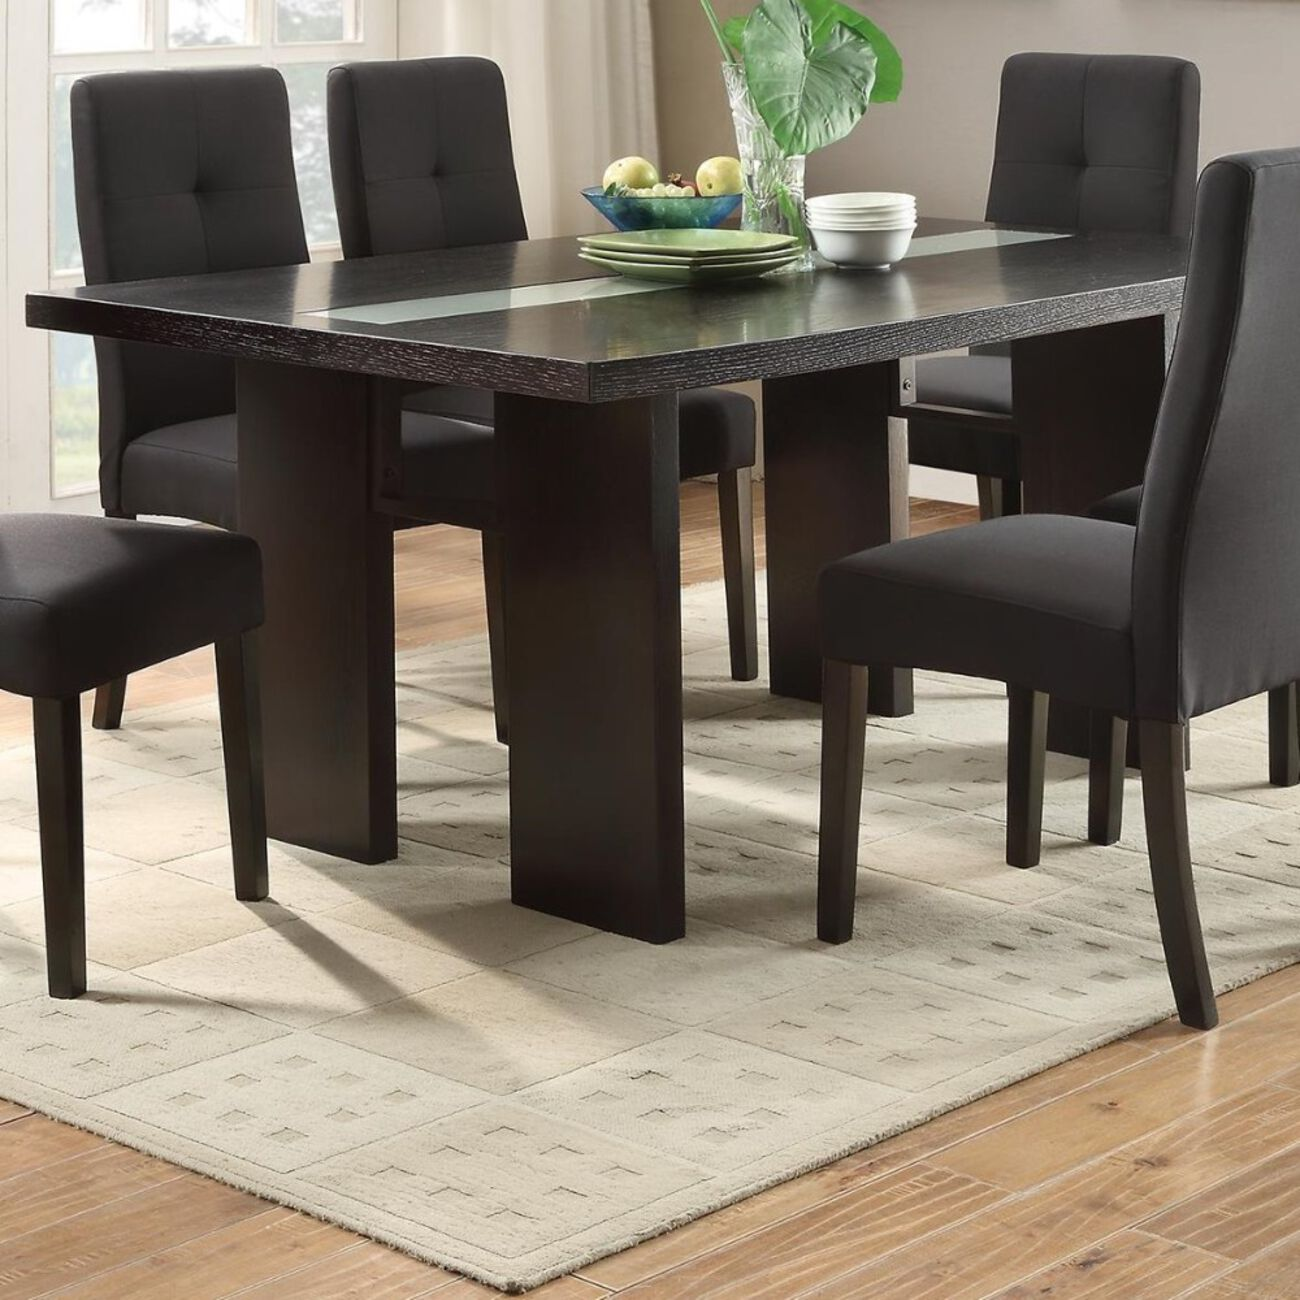 Wooden Dining Table, Brown